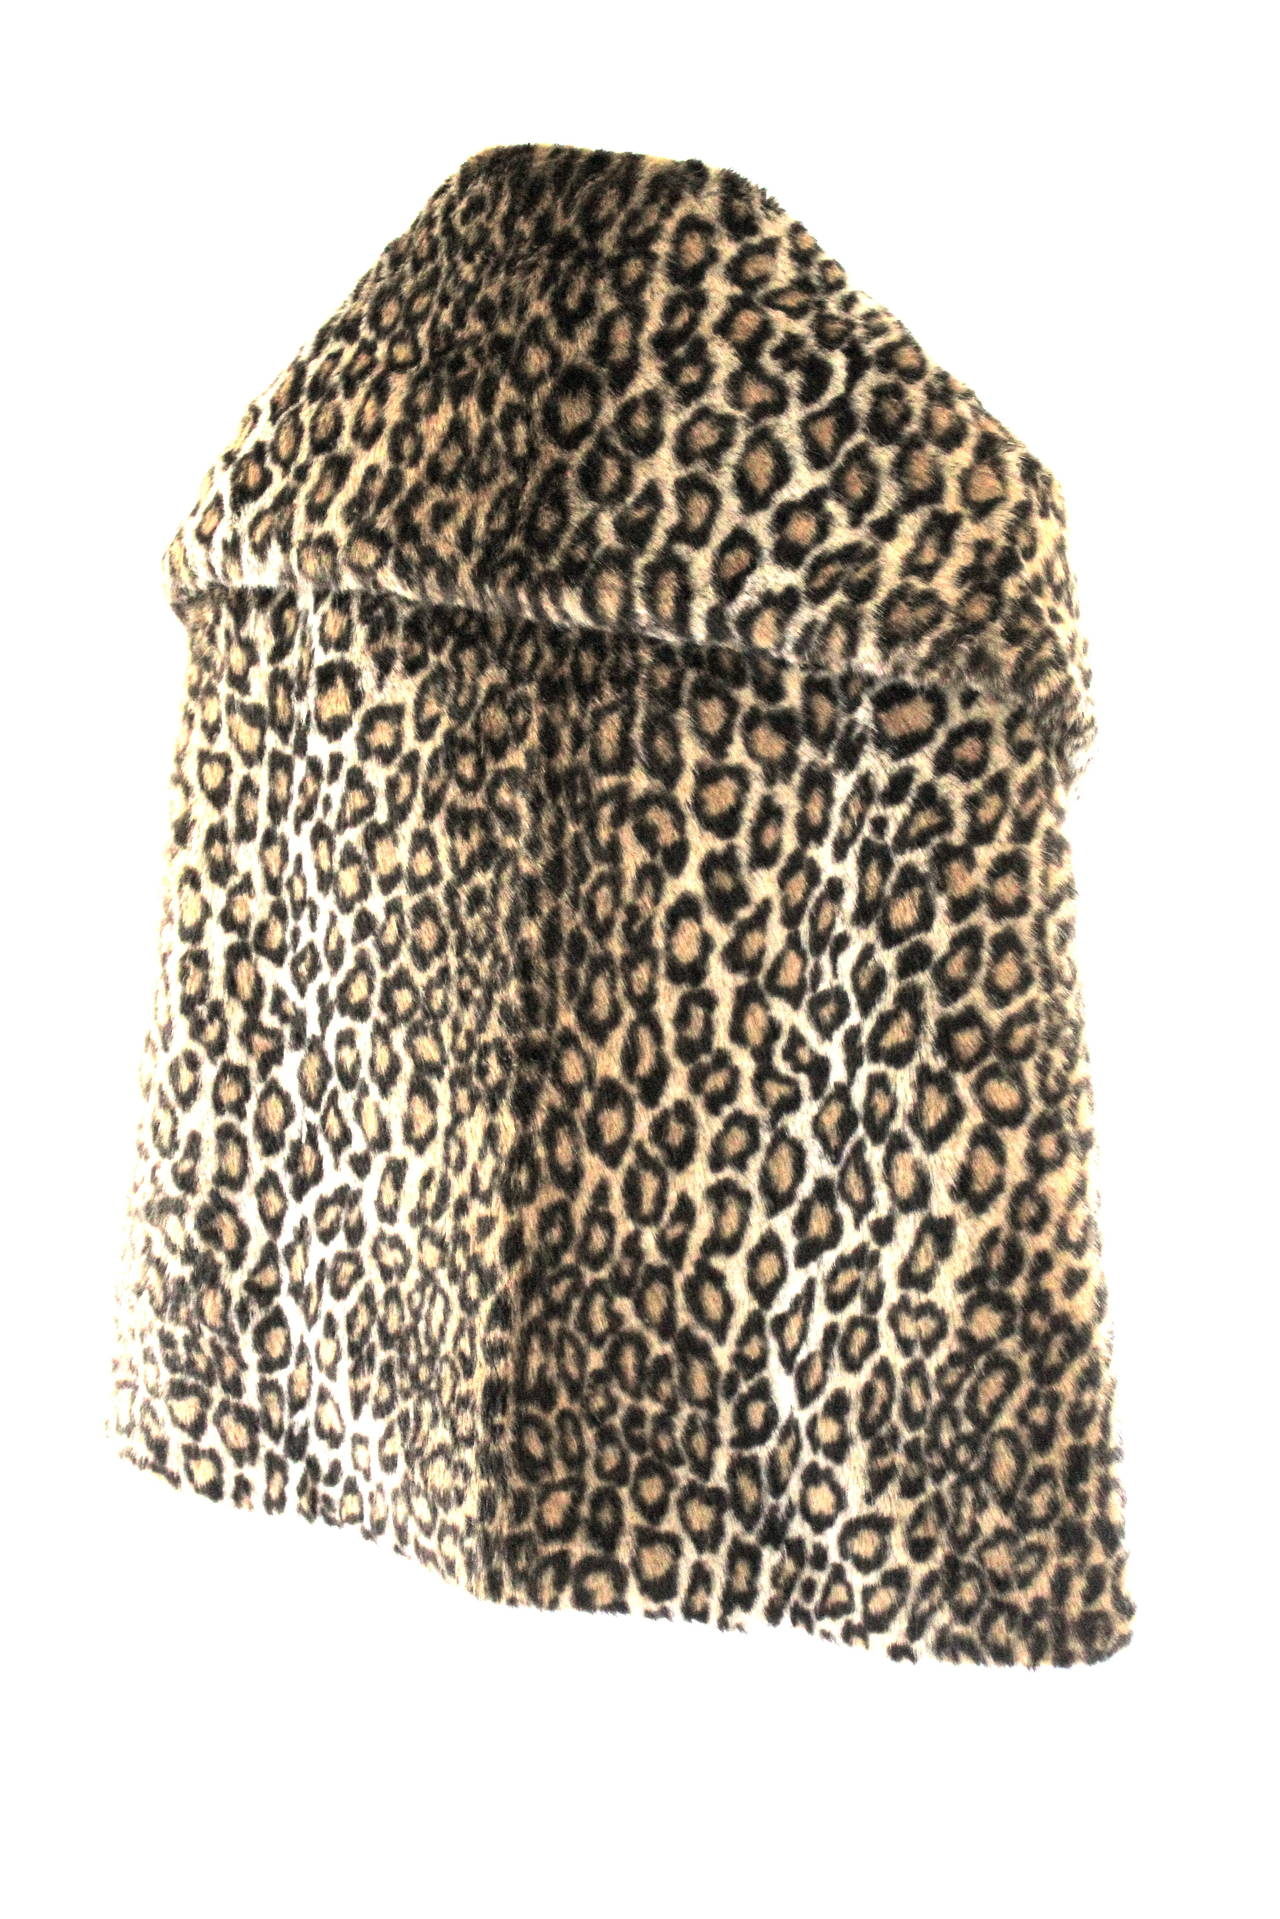 Women's Junya Watanabe for CDG AD 2000 Faux Fur Leopard Cape For Sale